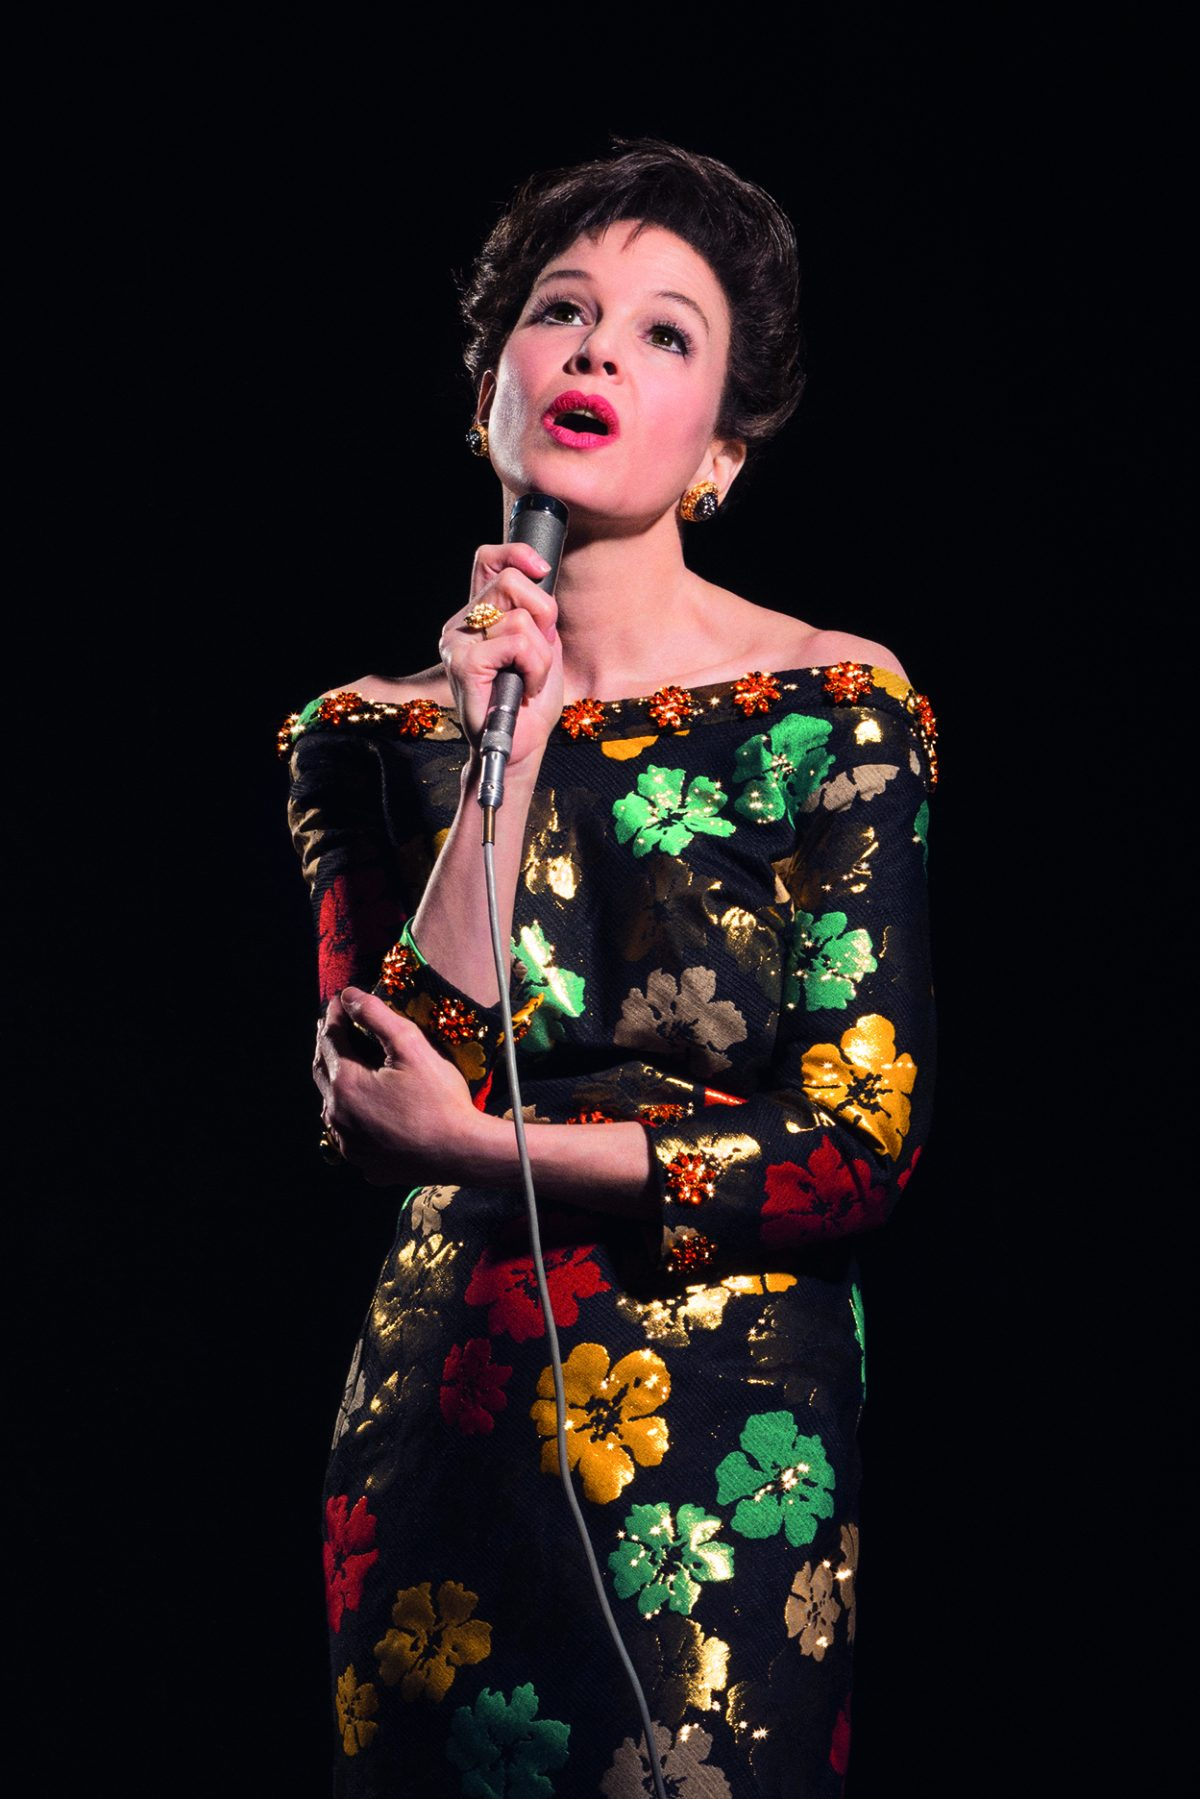 With the news that principal photography begins today on JUDY, based on the true story of Judy Garland's final concerts in London.